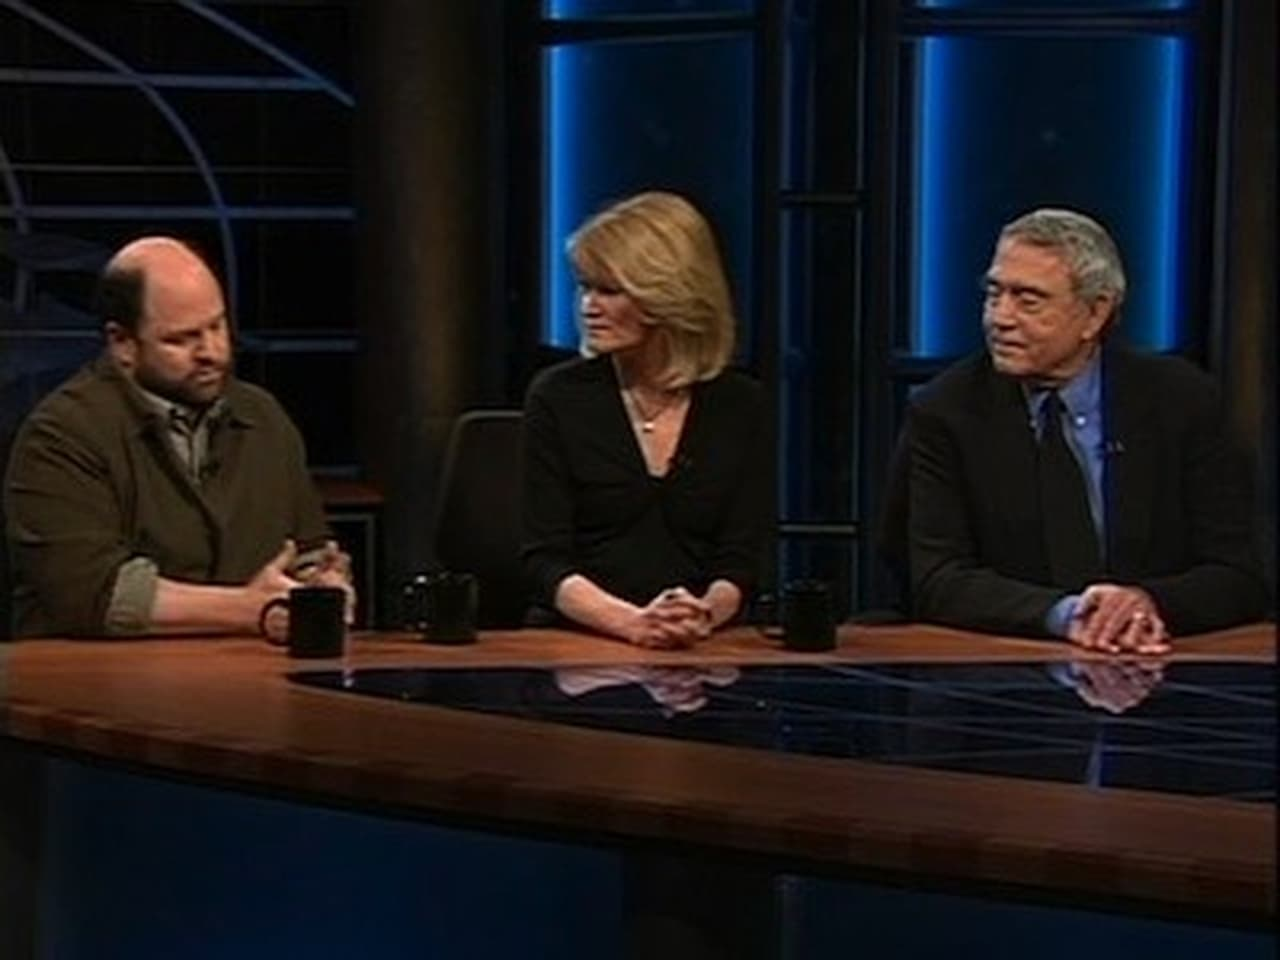 Real Time with Bill Maher - Season 5 Episode 5 : March 16, 2007